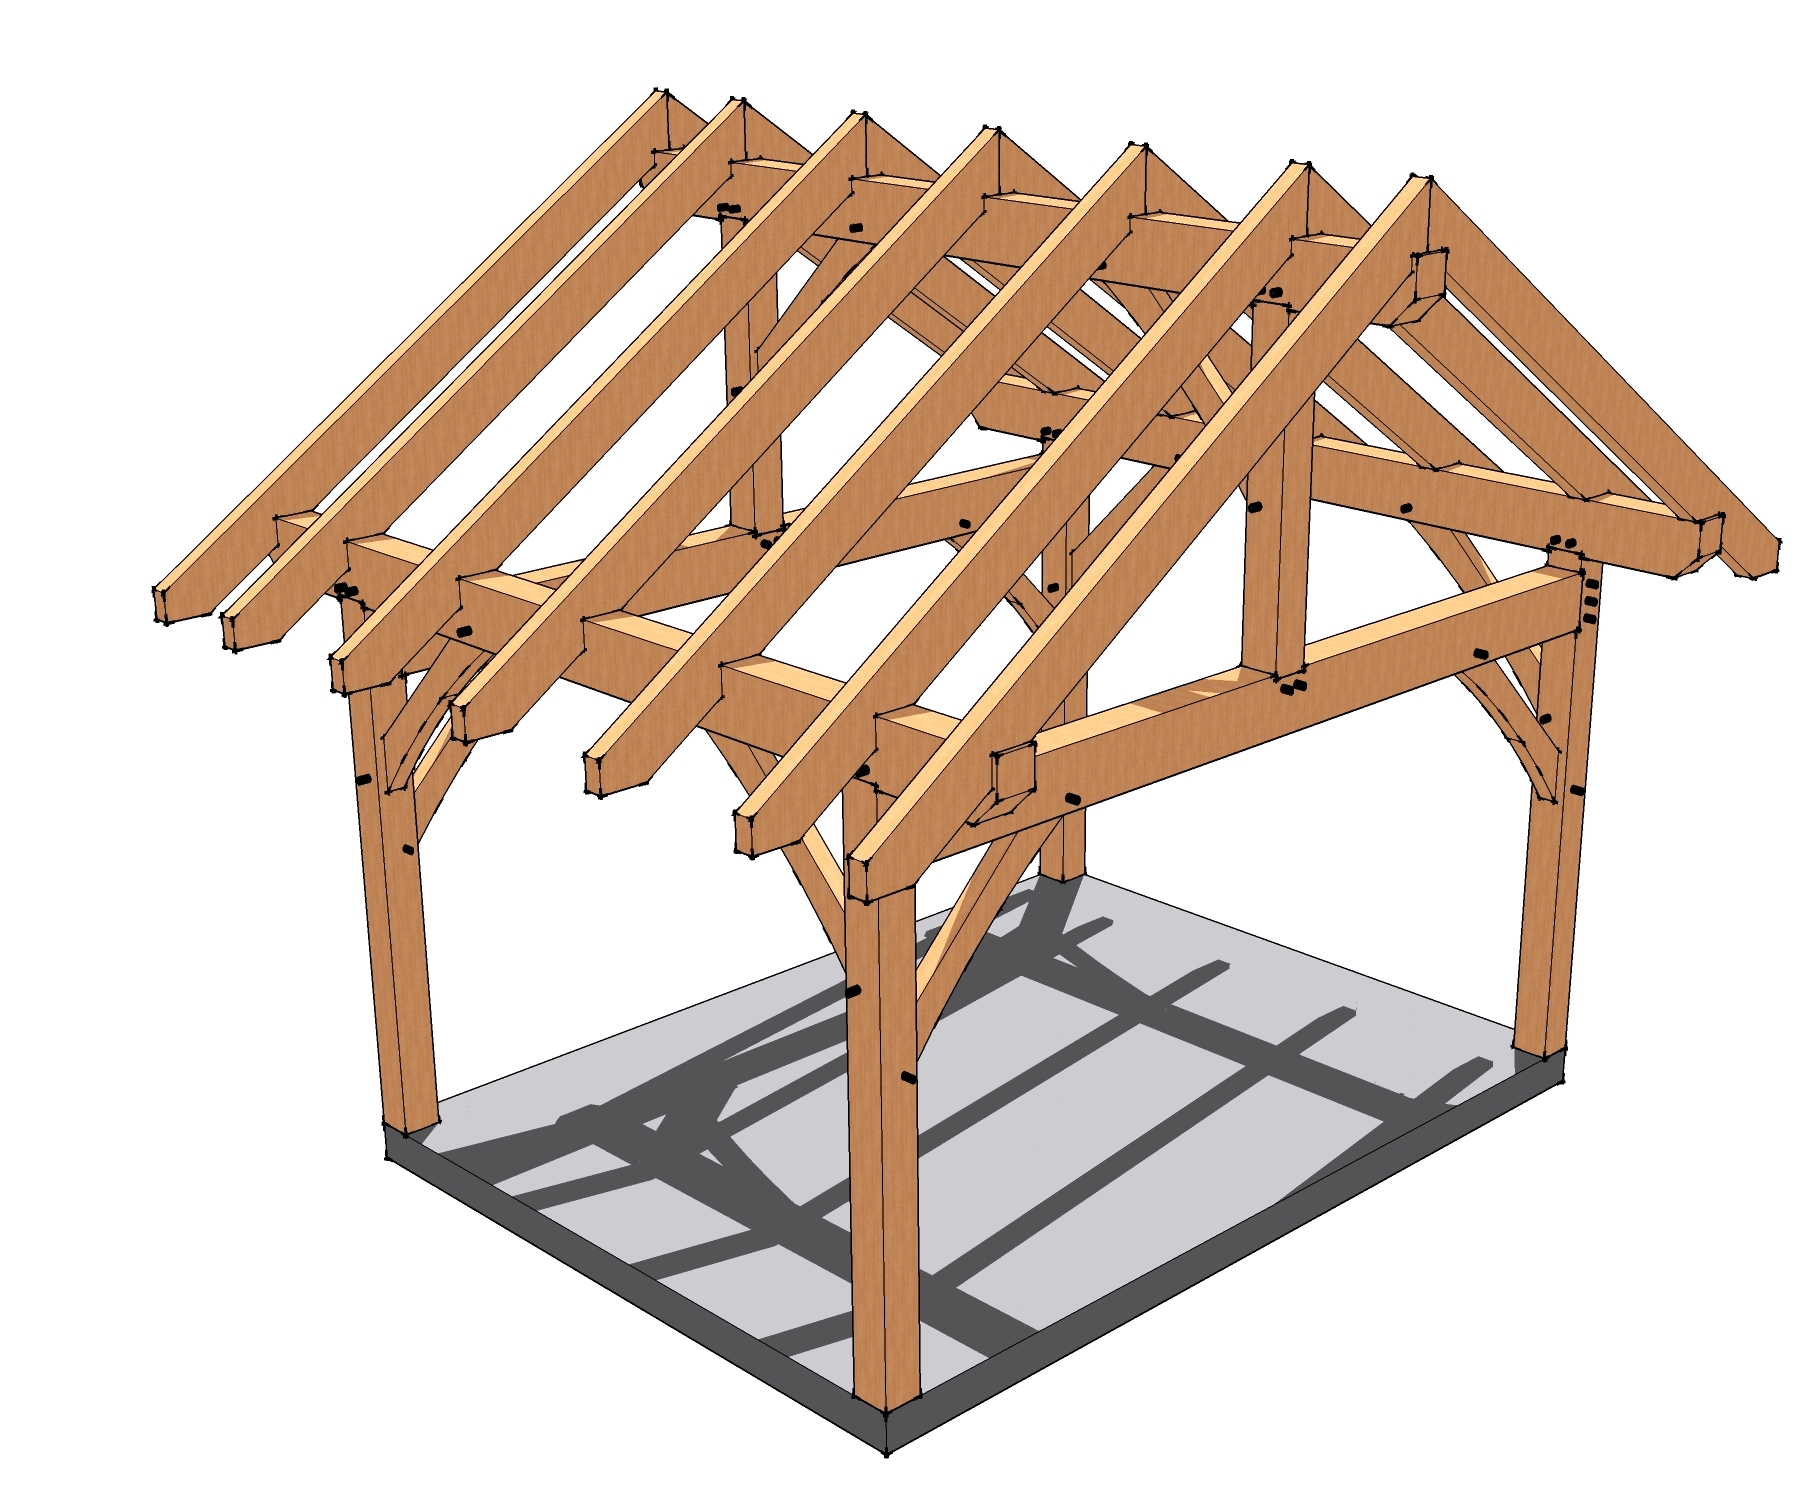 12x16 Timber Frame Porch Timber Frame Porch Timber Frame Plans Timber Frame